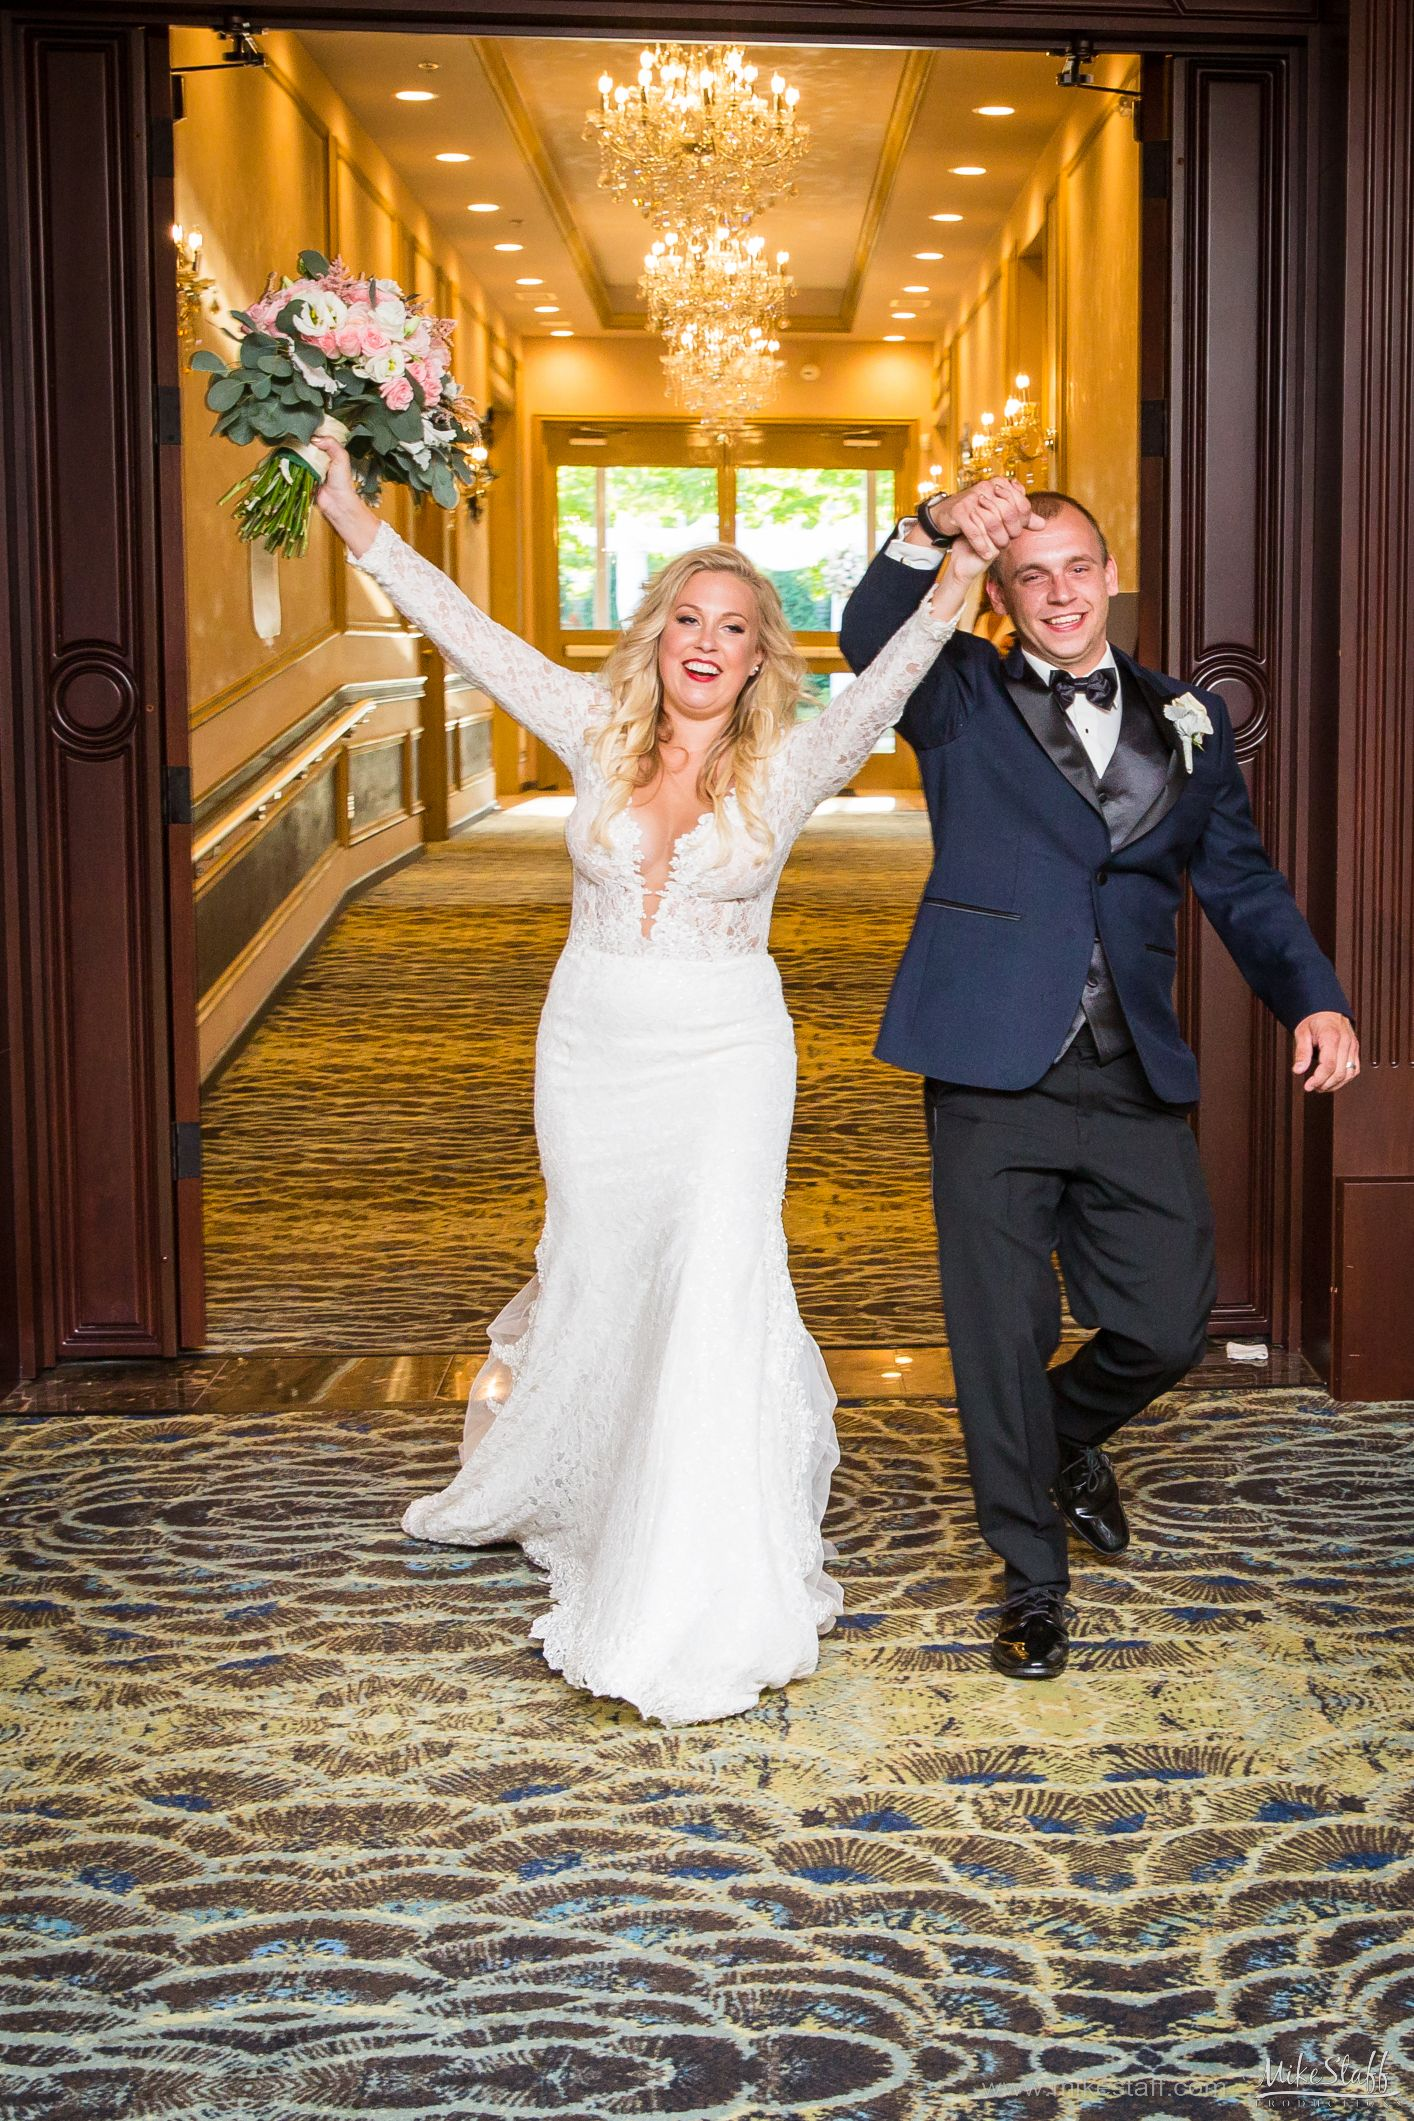 Have you read how to hire a GREAT DJ? Wedding dj